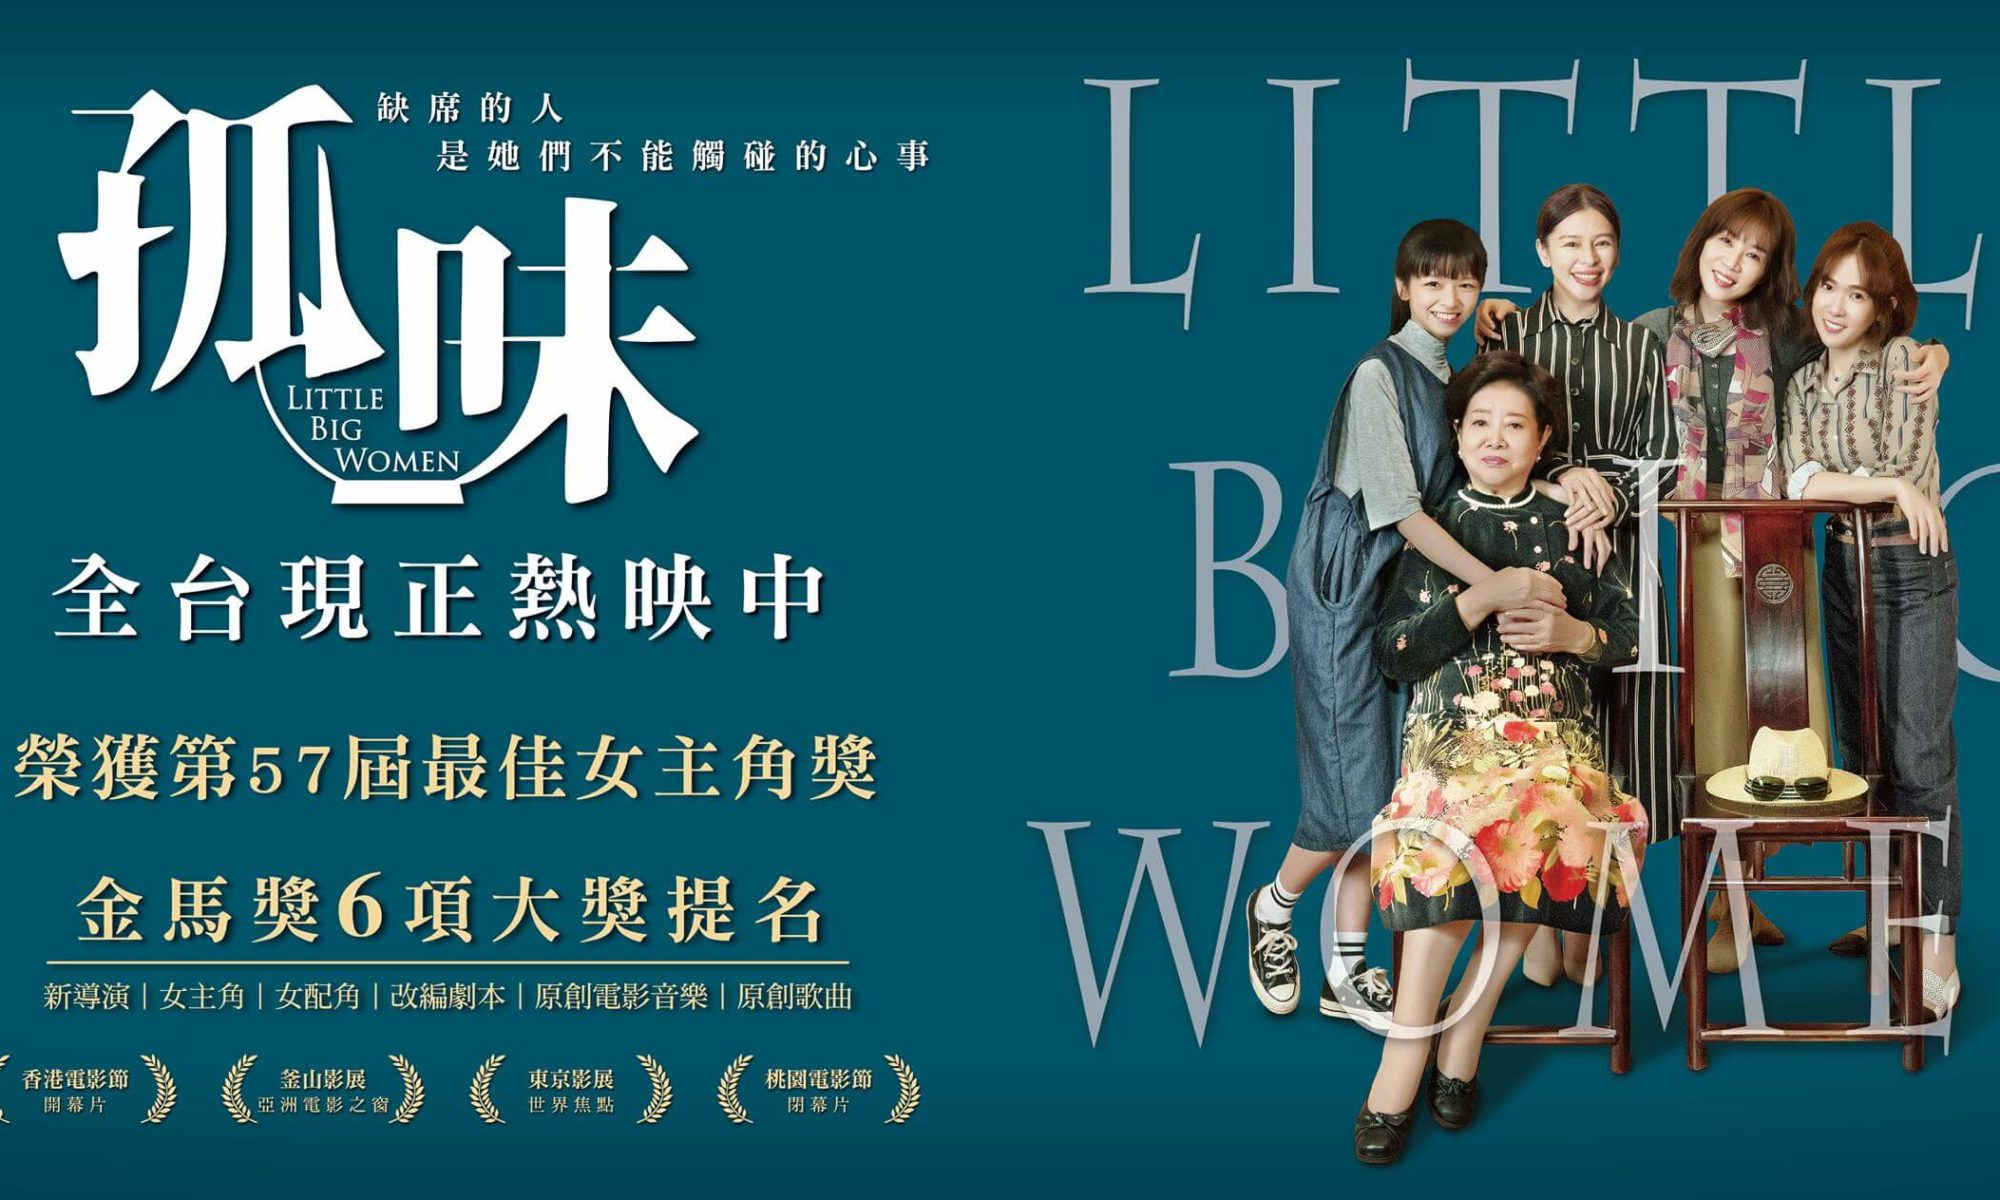 孤味 little big woman